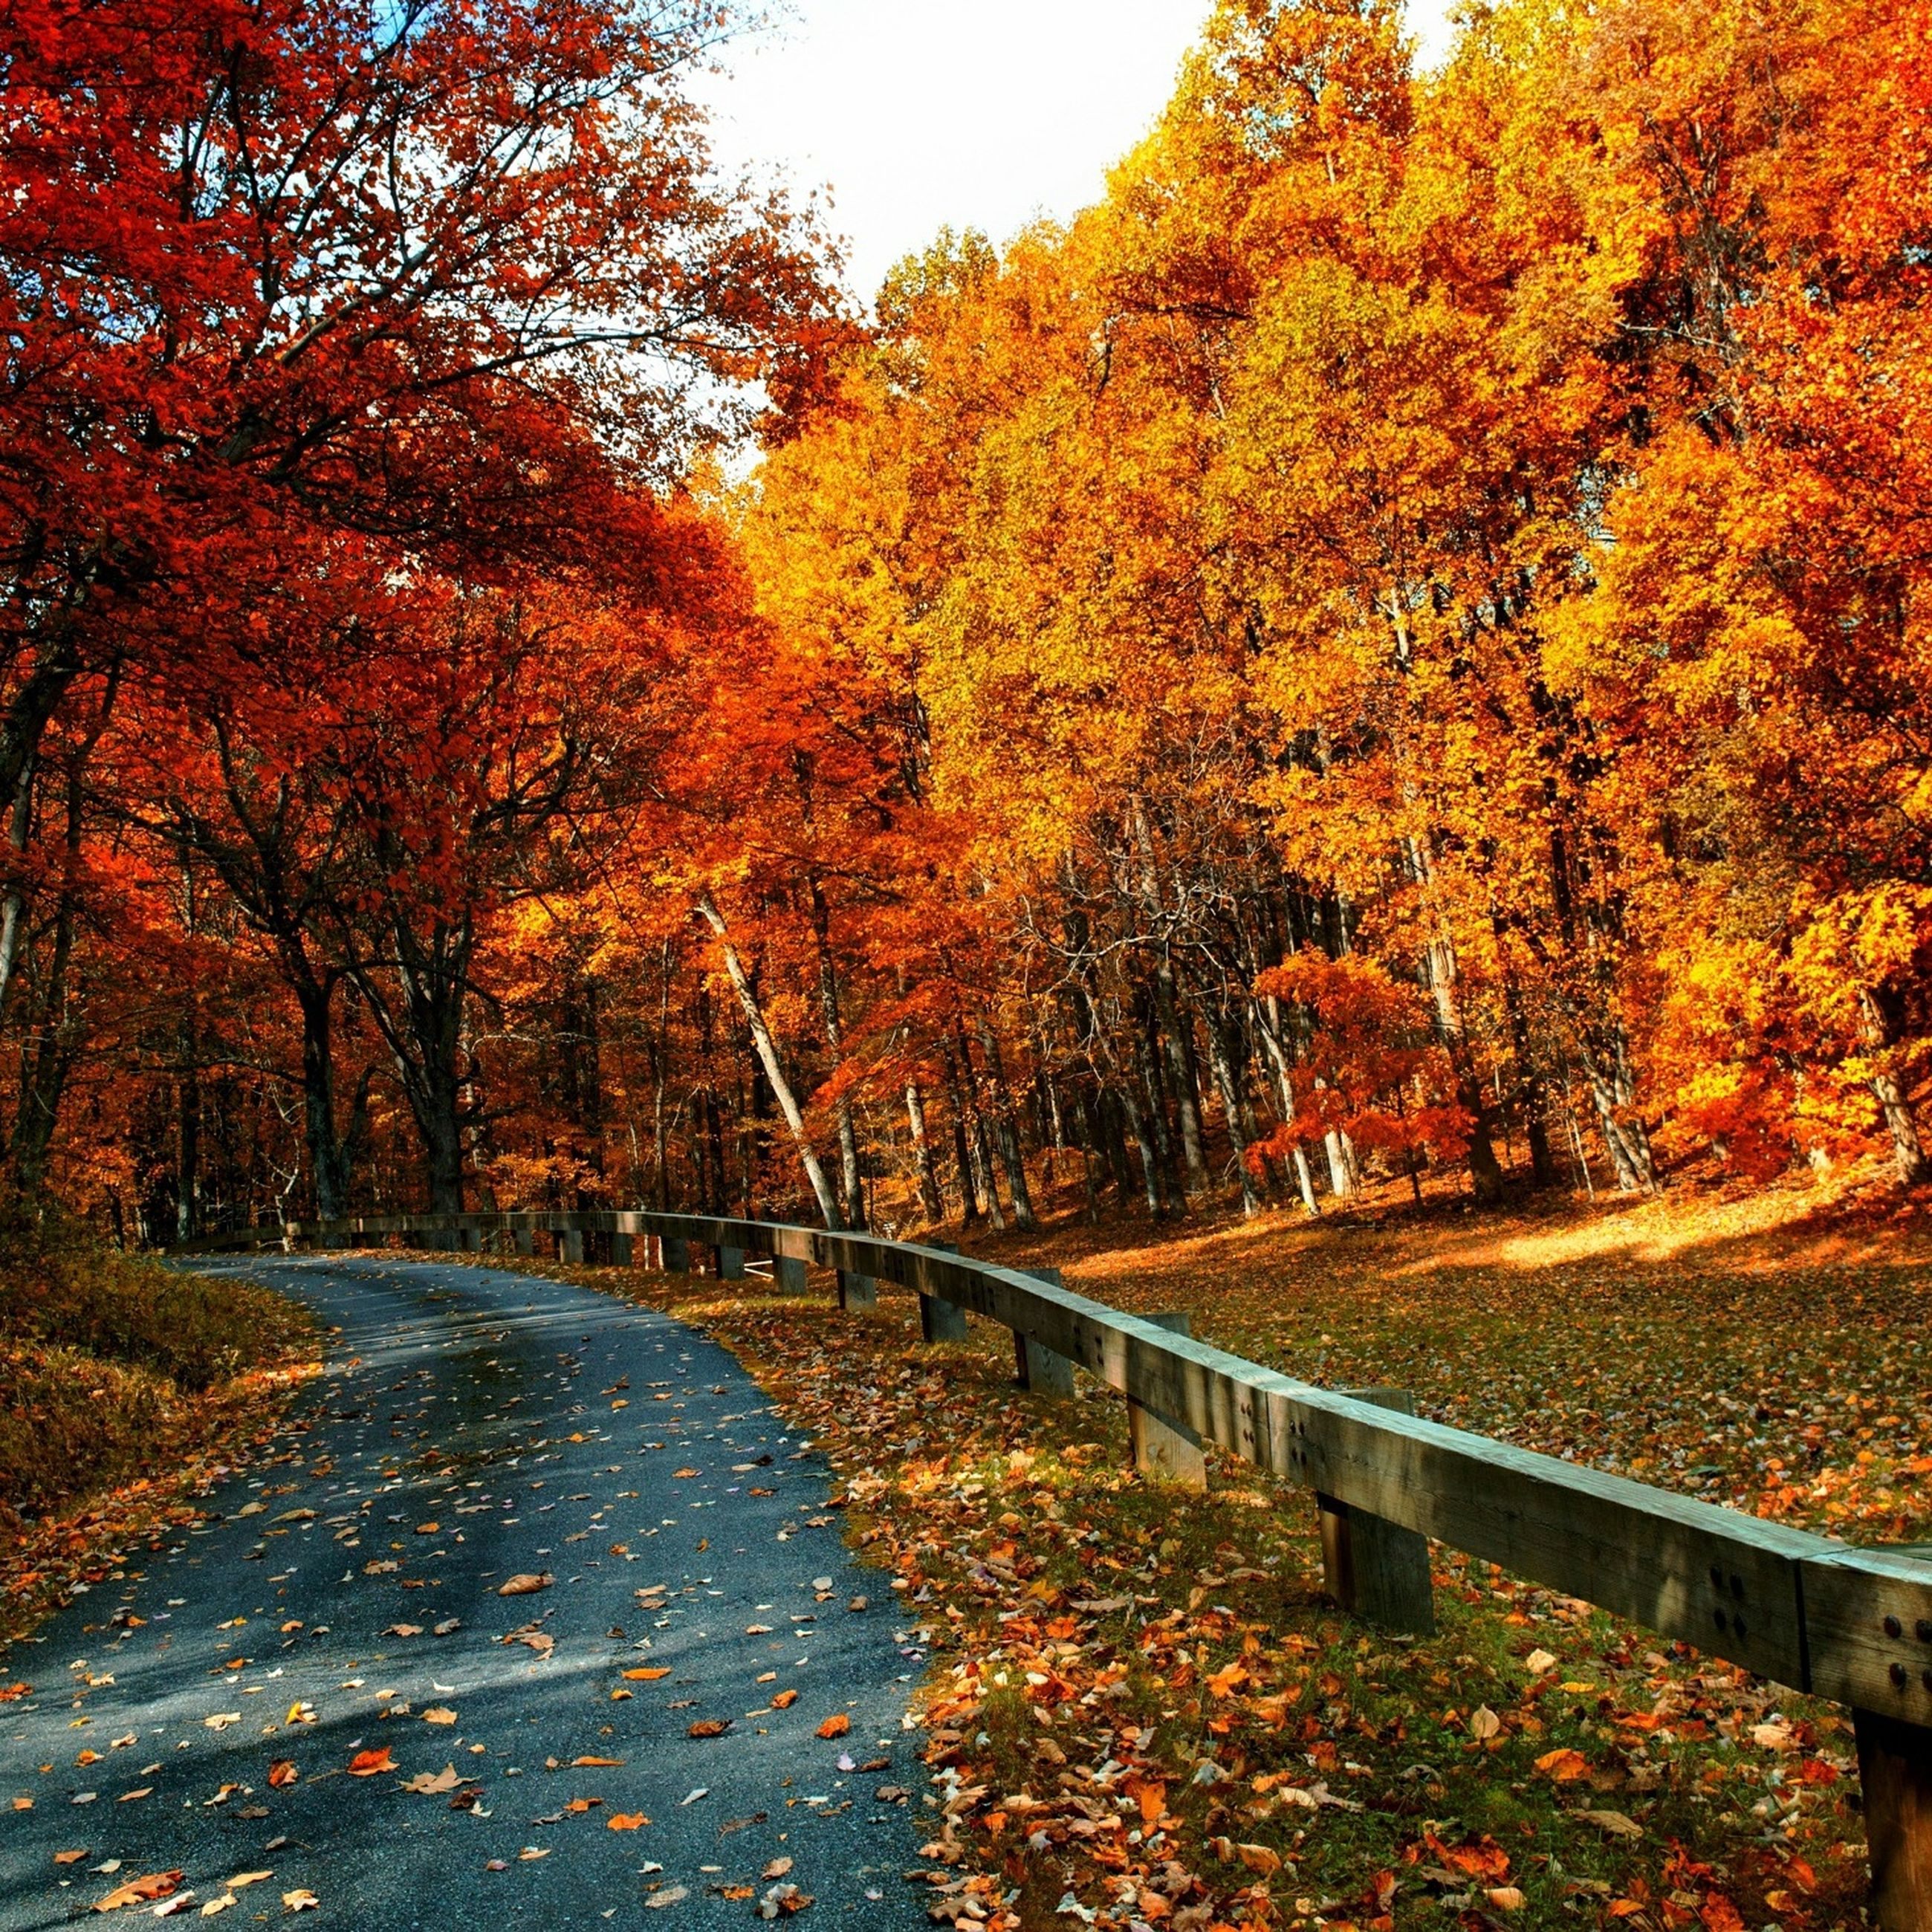 autumn, change, tree, season, the way forward, leaf, fallen, orange color, tranquility, nature, beauty in nature, transportation, diminishing perspective, growth, tranquil scene, road, yellow, scenics, branch, fall